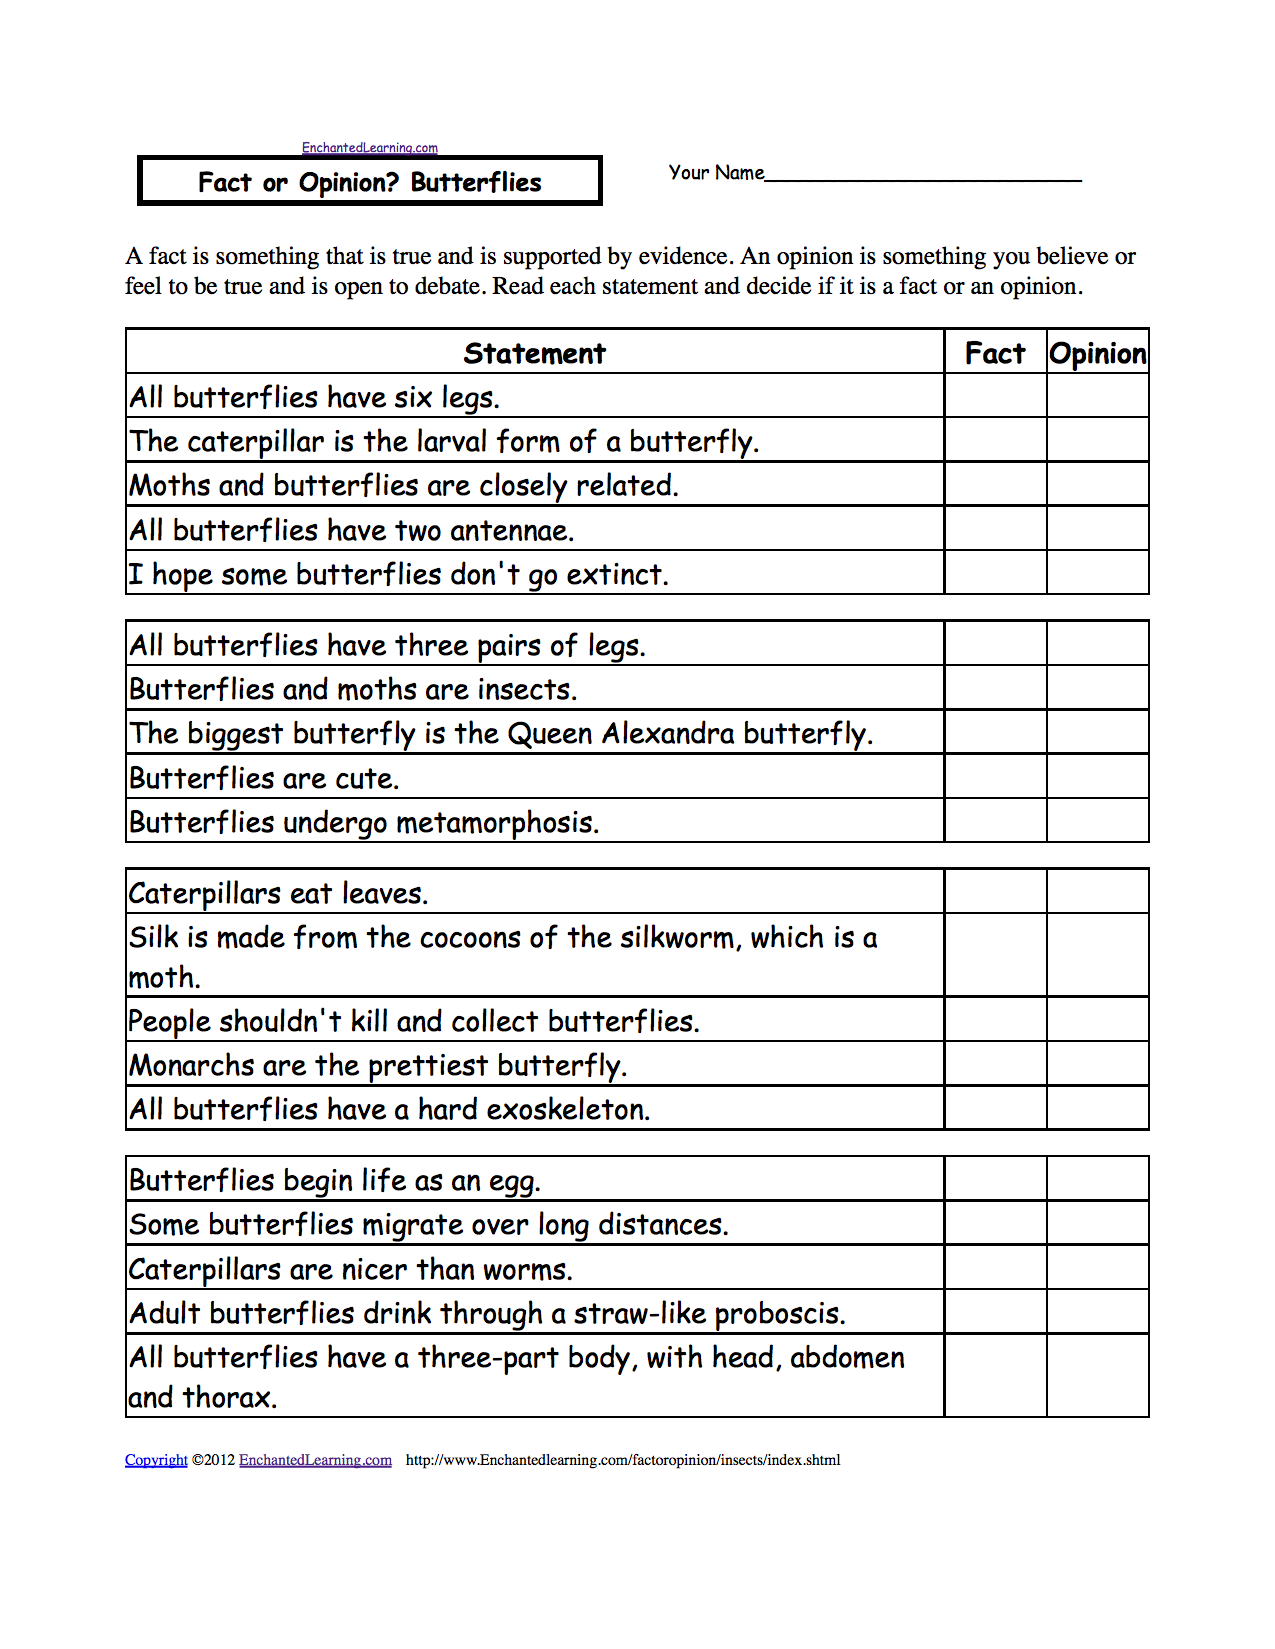 Worksheets Fact Vs Opinion Worksheets fact or opinion checkmark worksheets to print enchantedlearning com